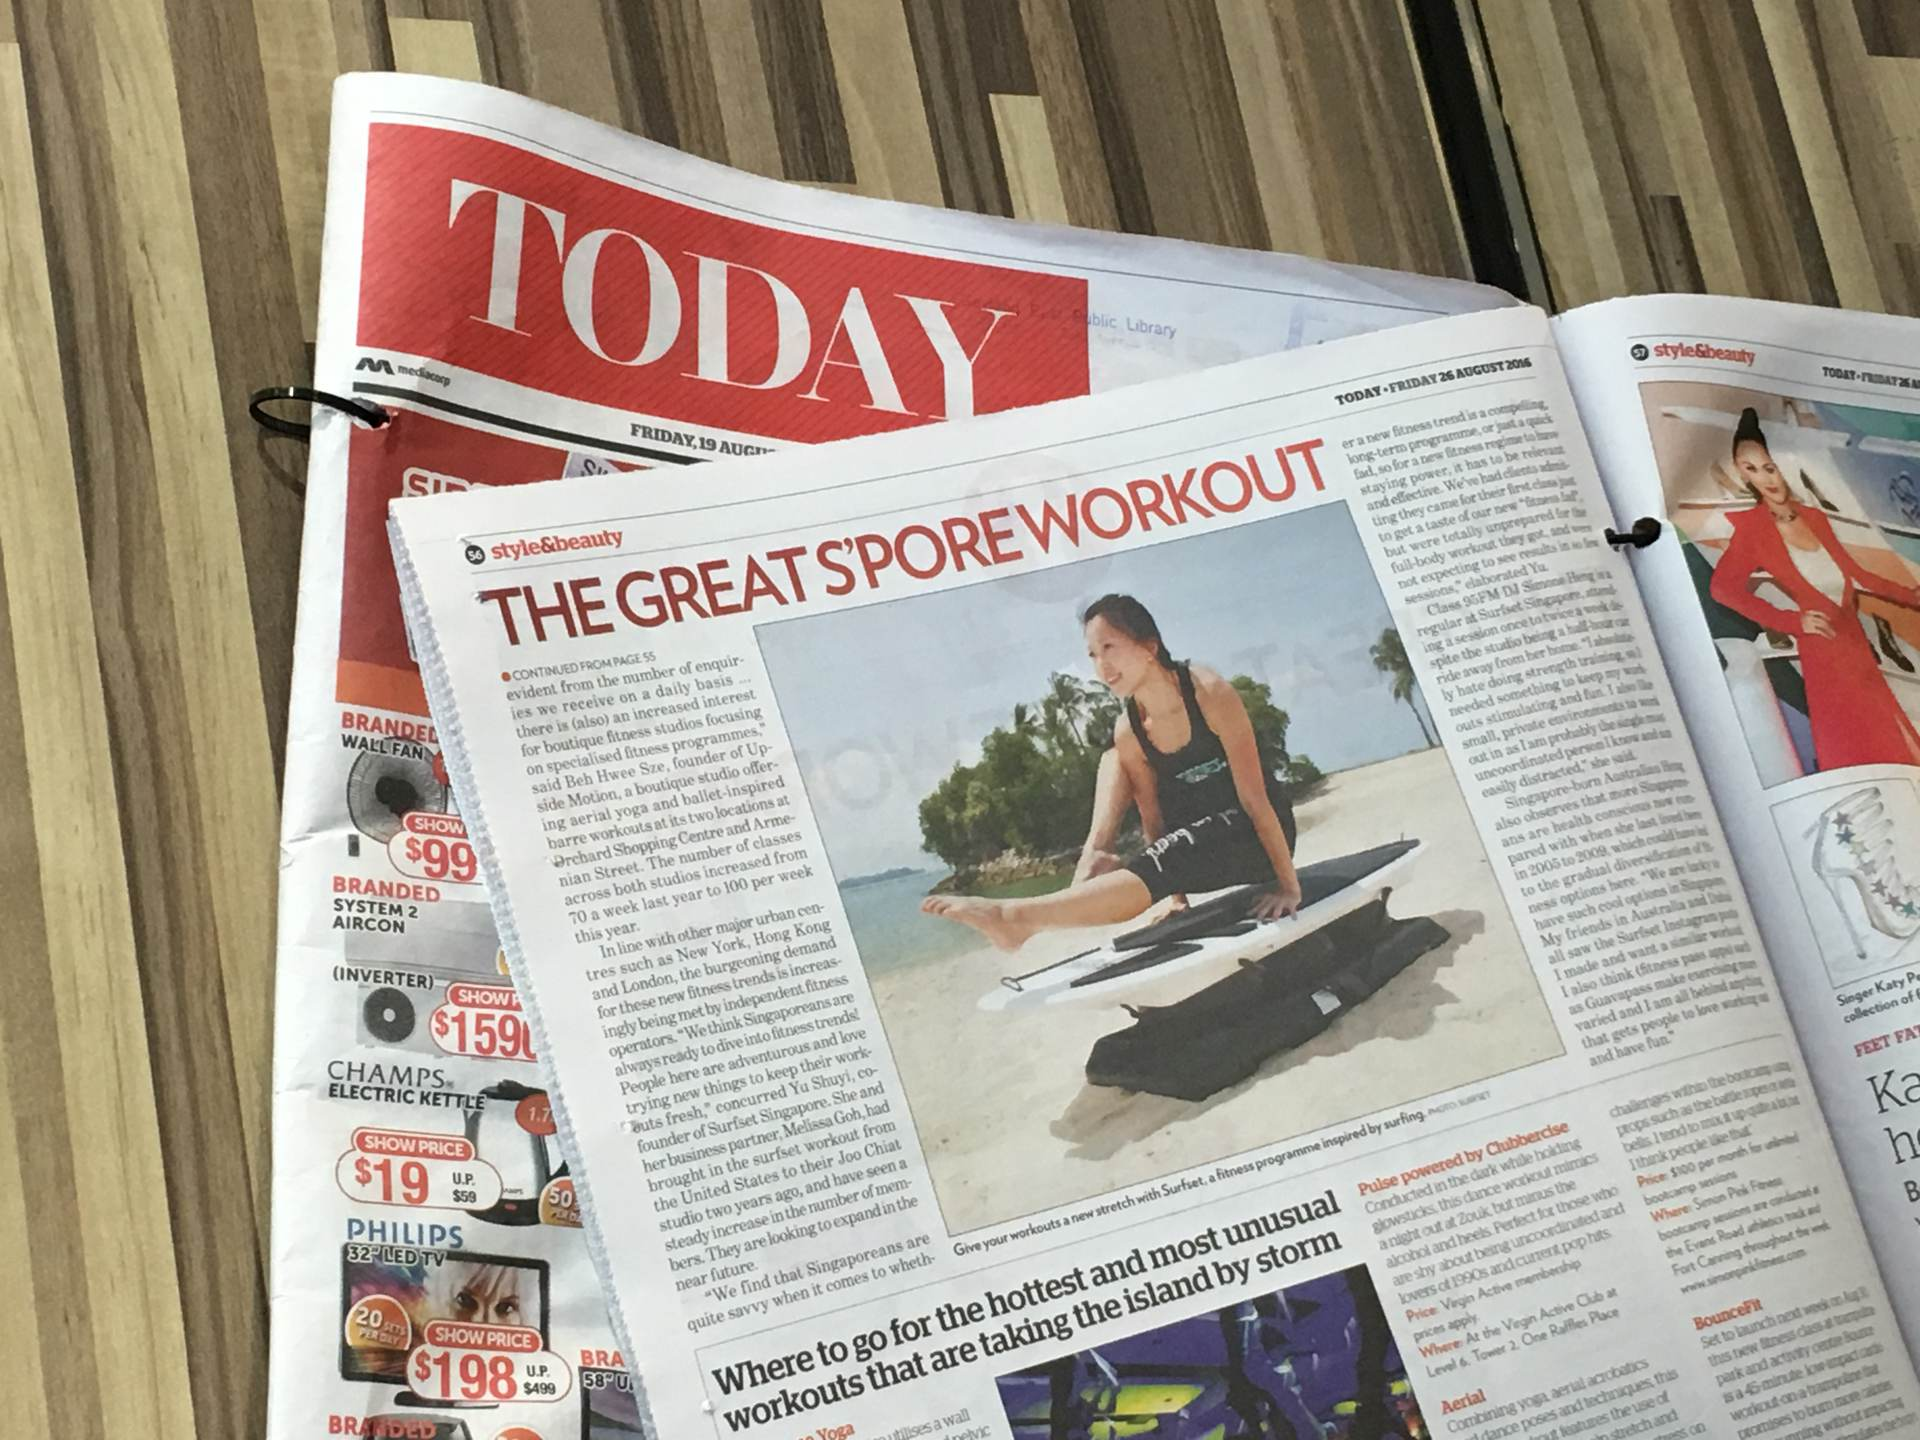 SURFSET on today's Today newspaper!